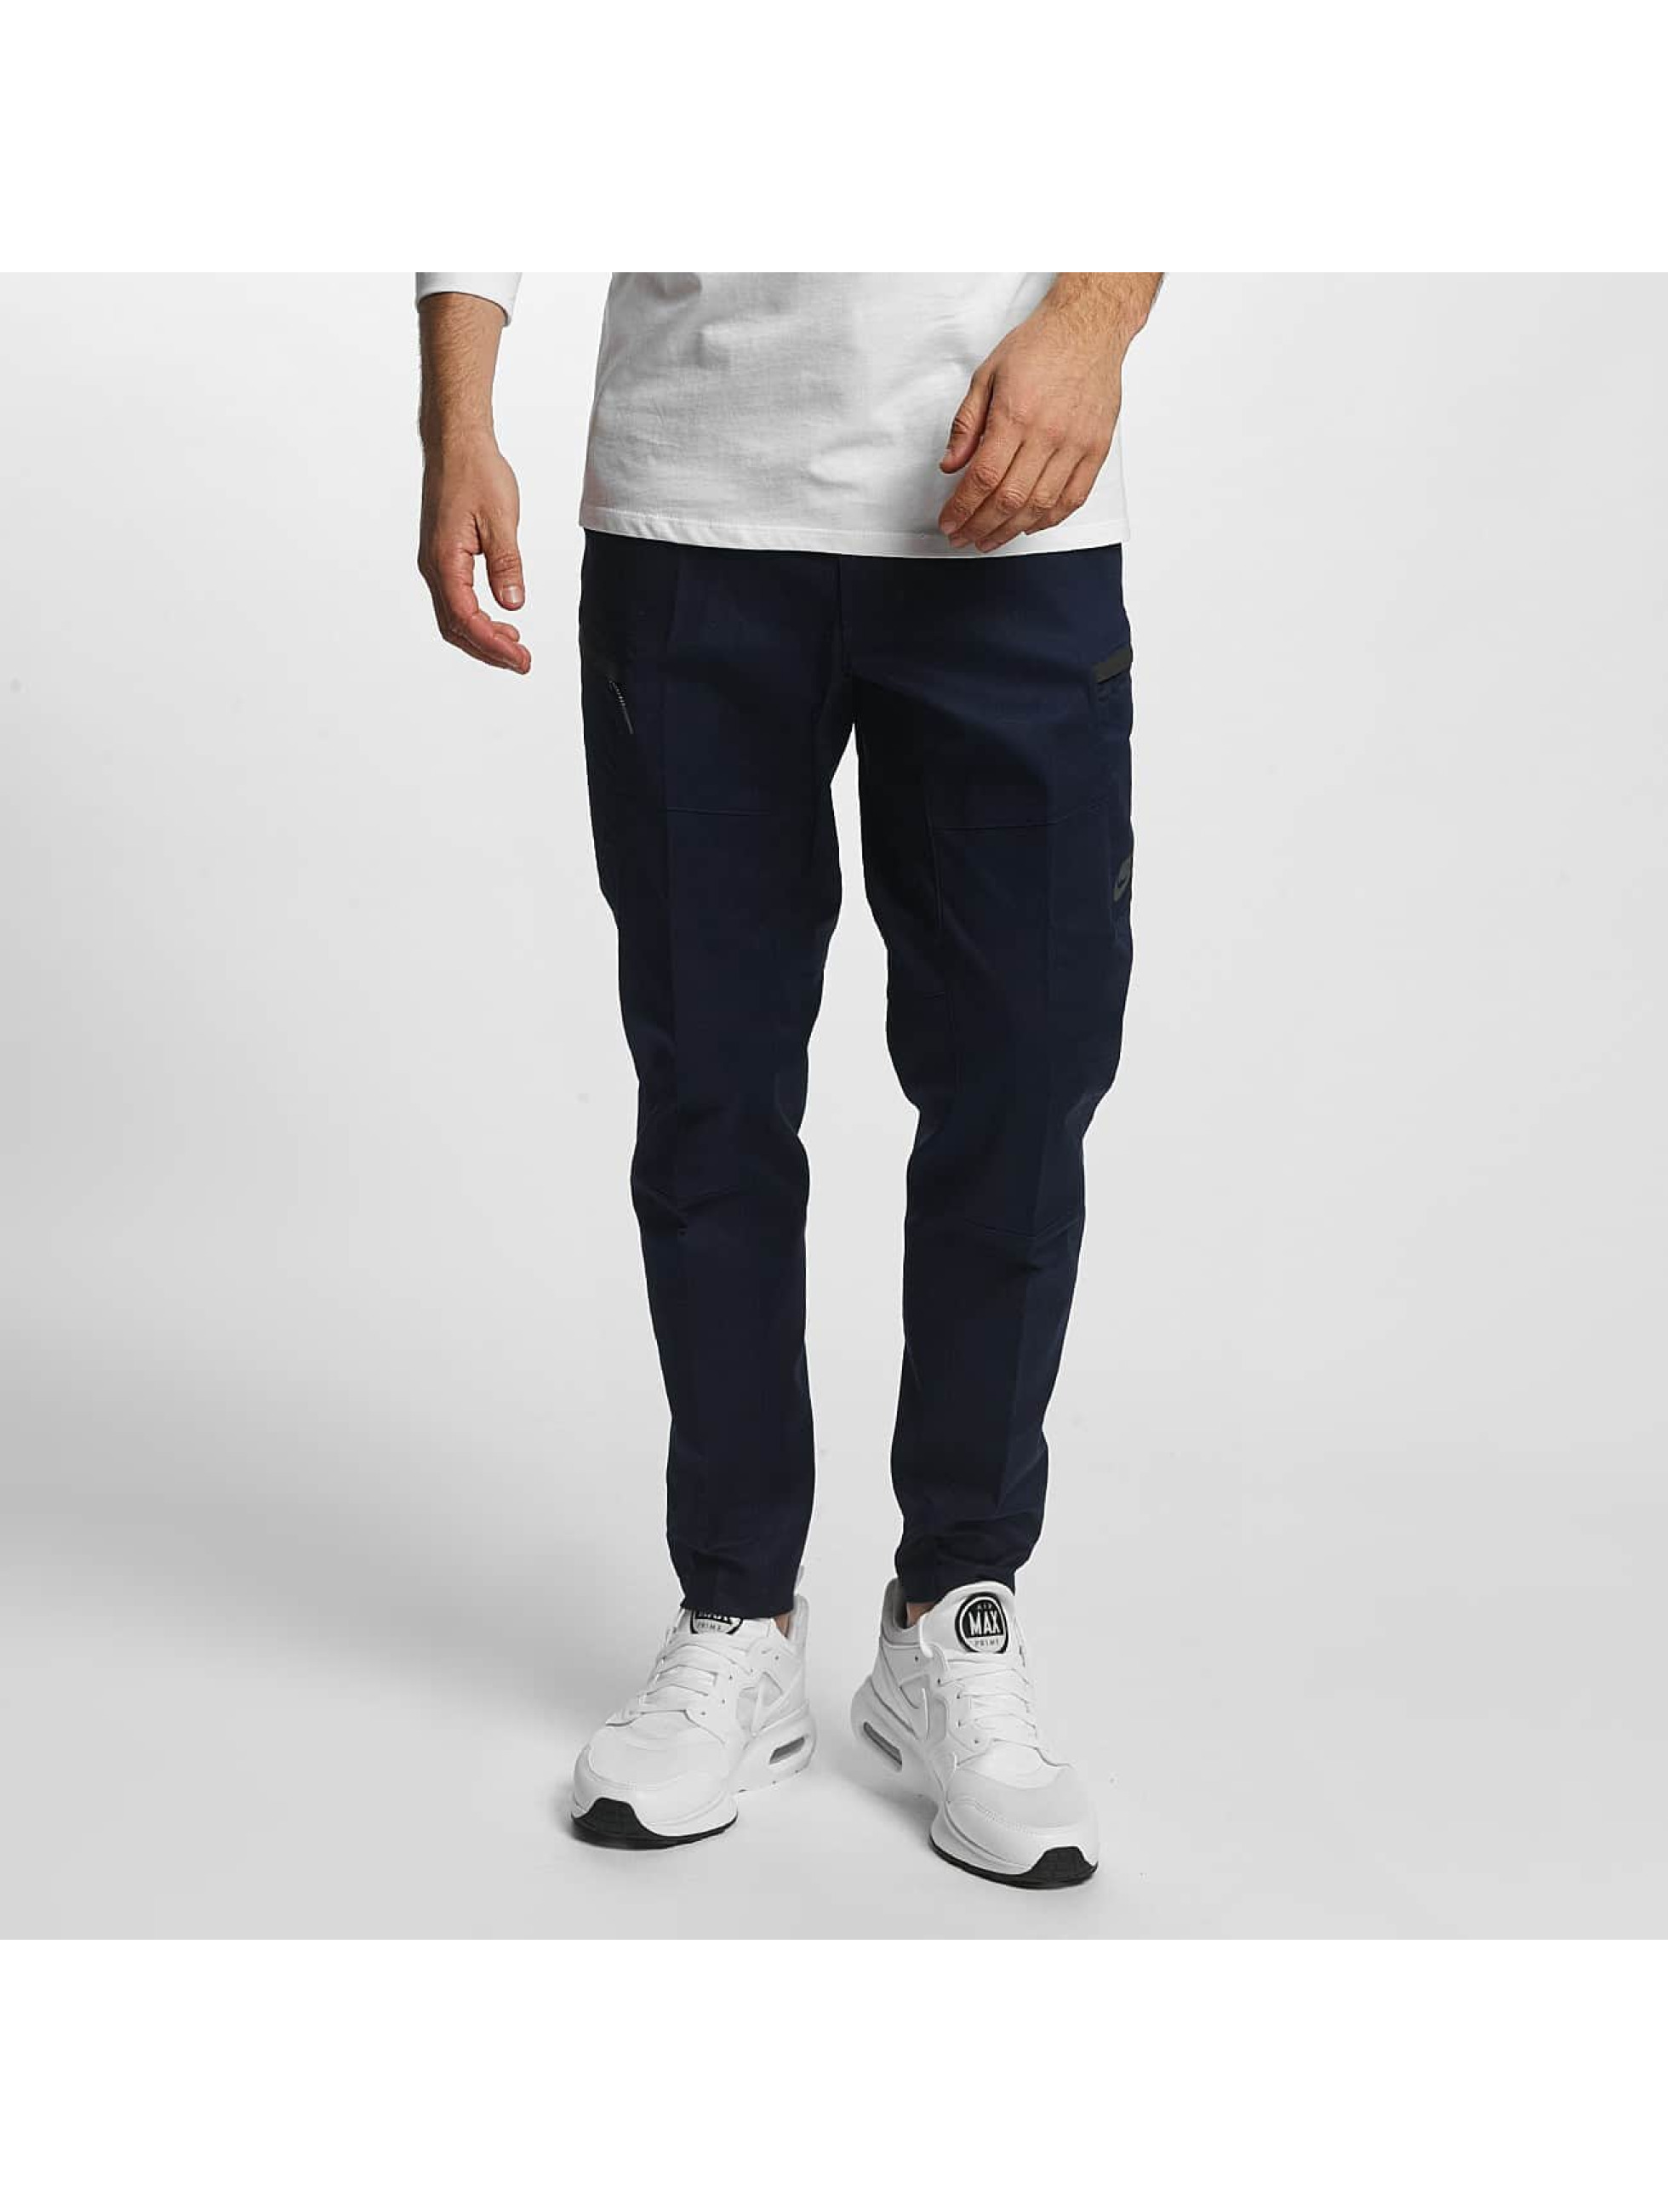 Nike Männer Chino NSW Sweatpants in blau